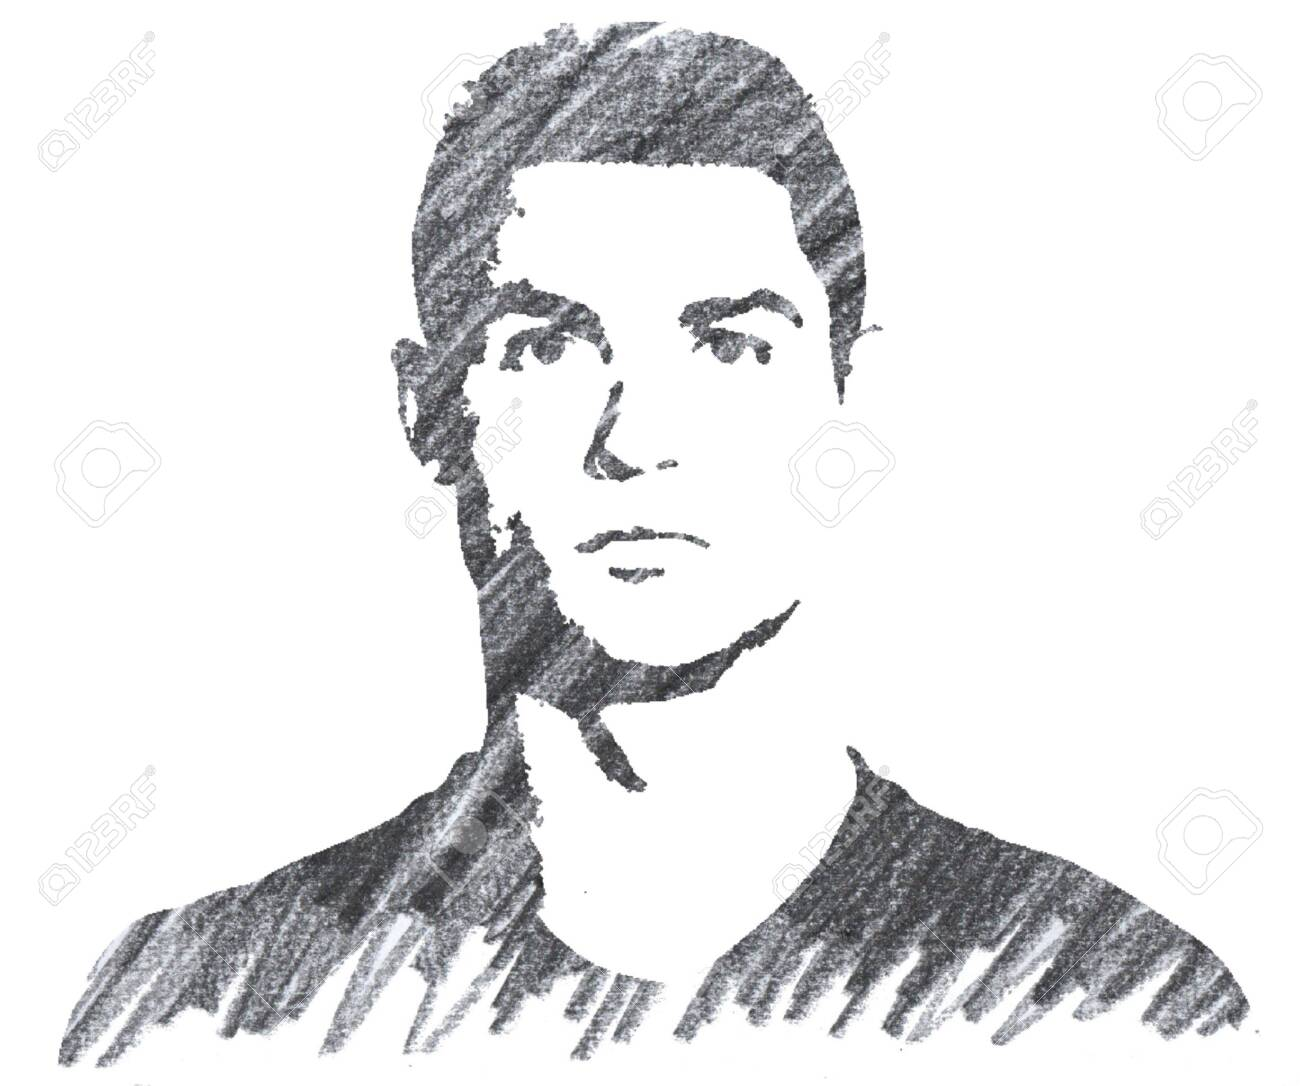 Cristiano Ronaldo Editorial Pencil Drawing Stock Photo Picture And Royalty Free Image Image 137710390